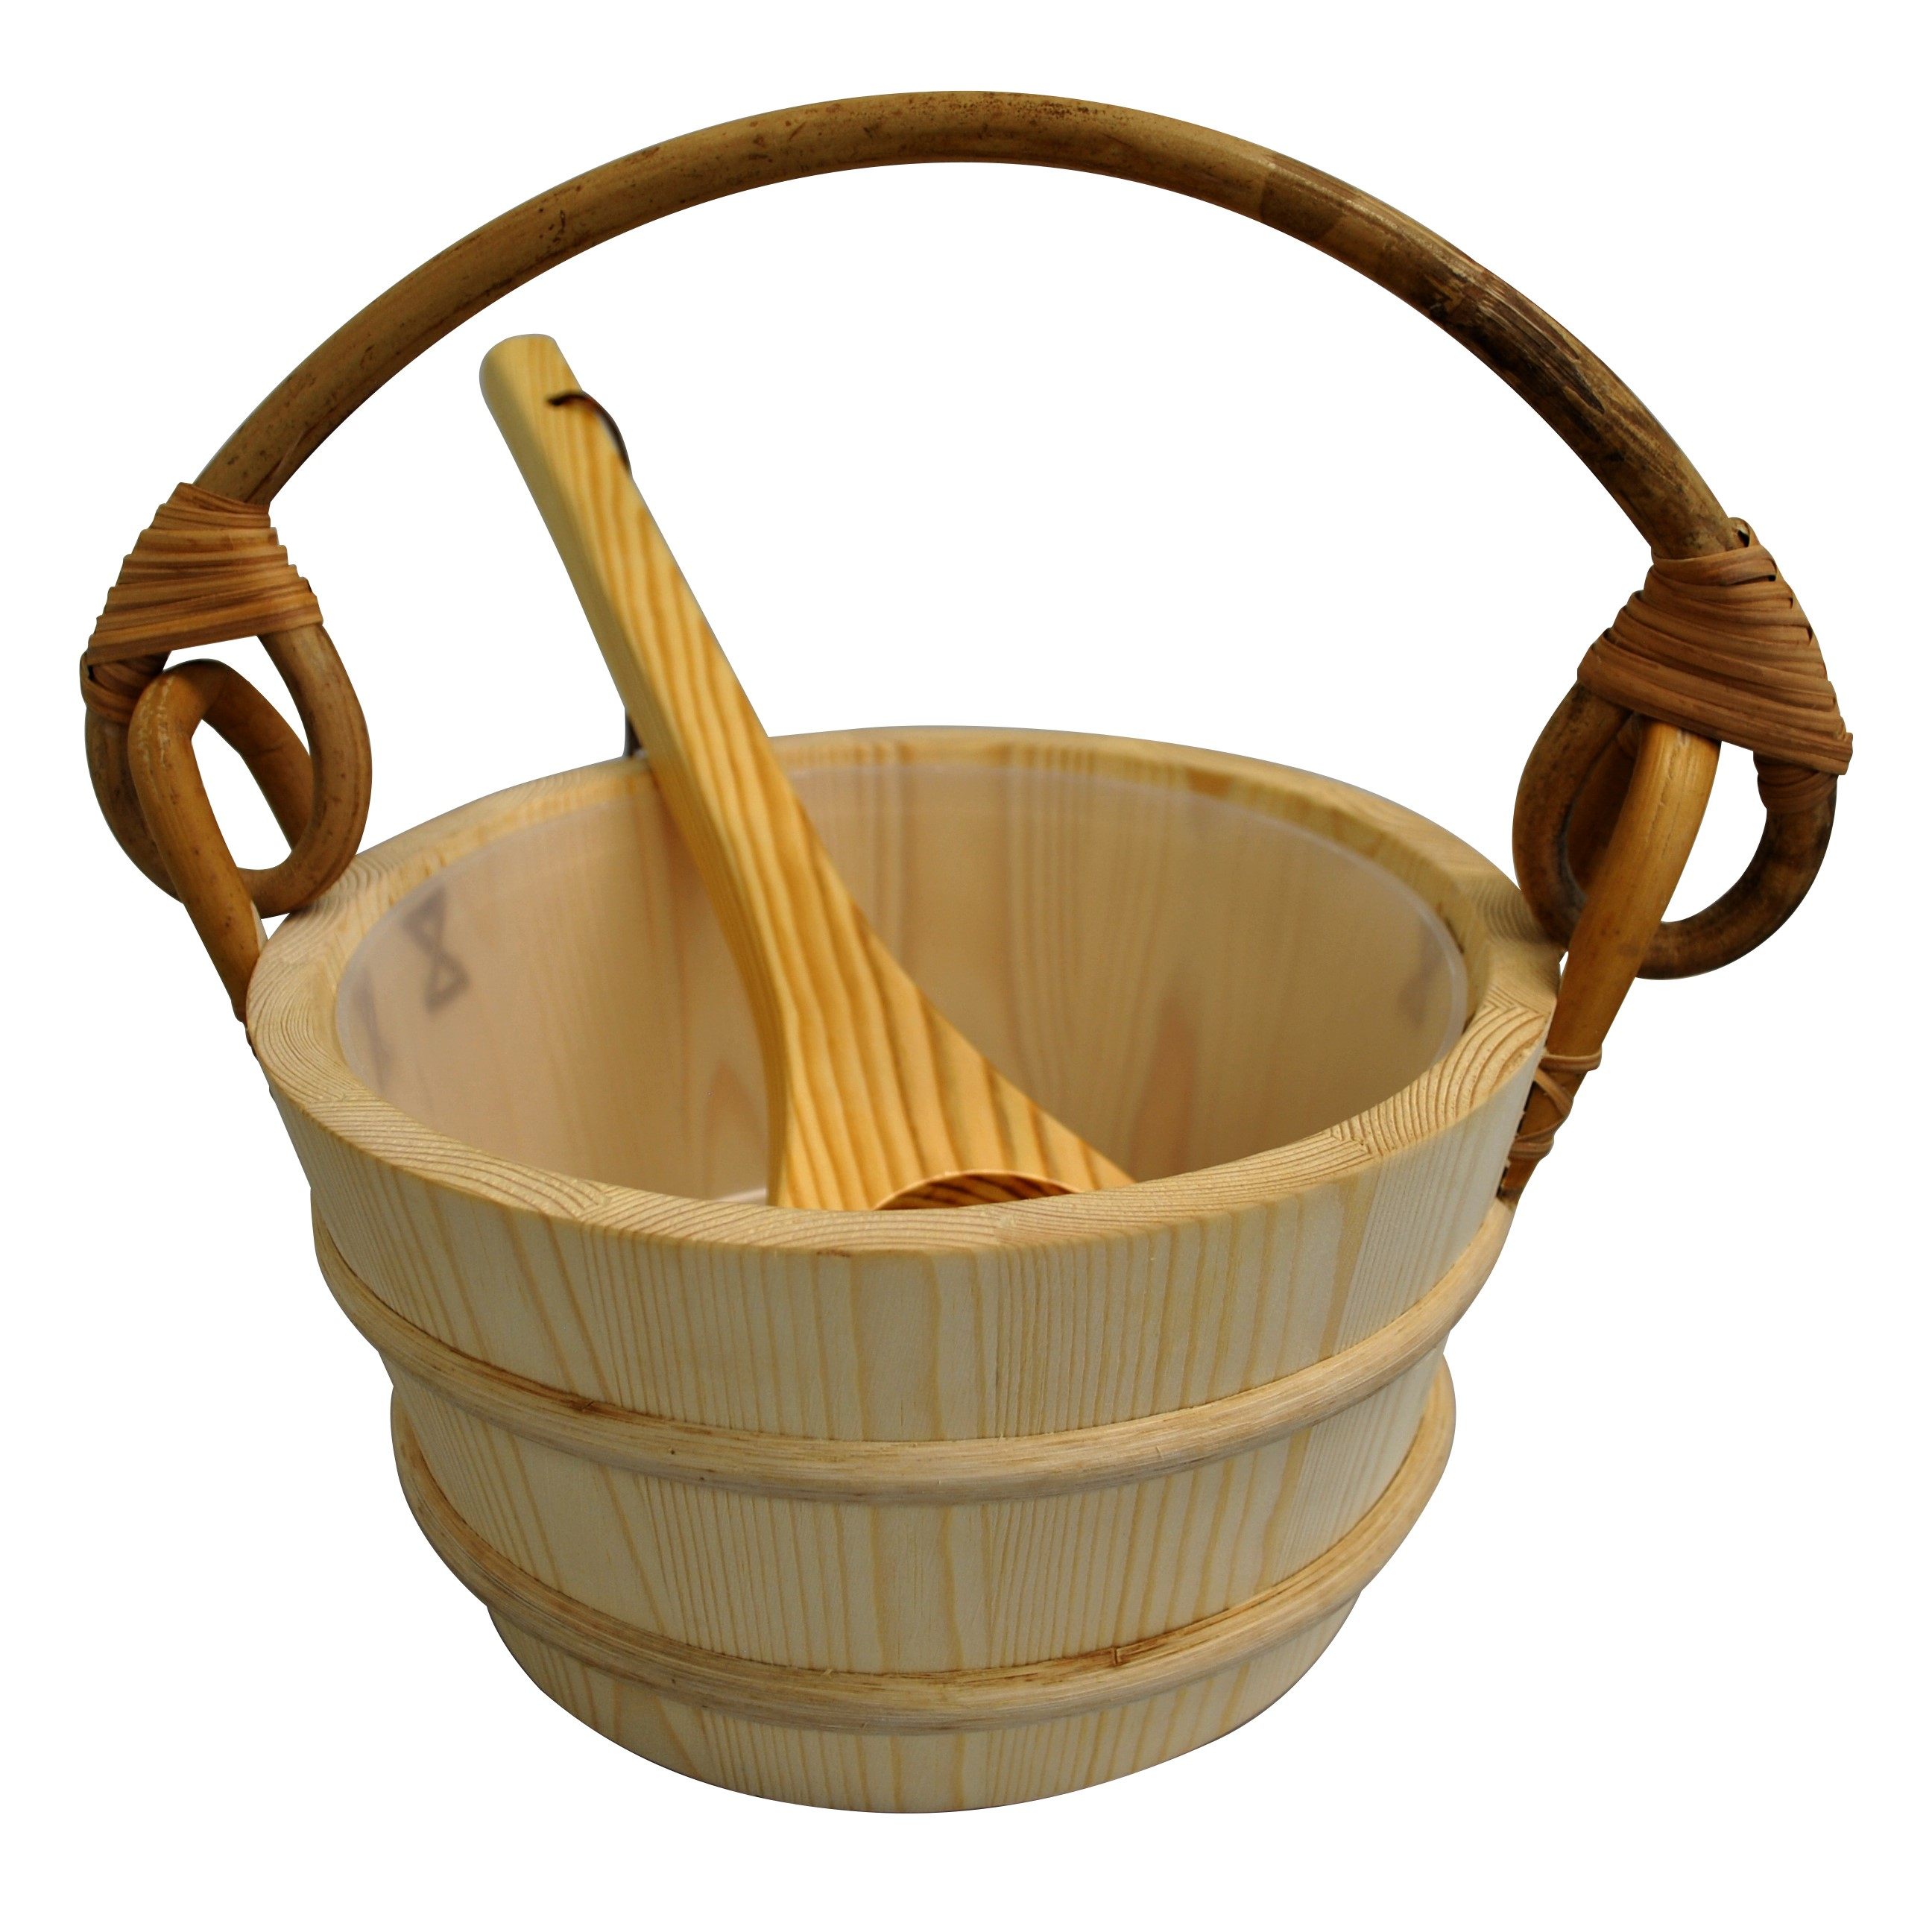 White Pine Sauna Bucket and ladel